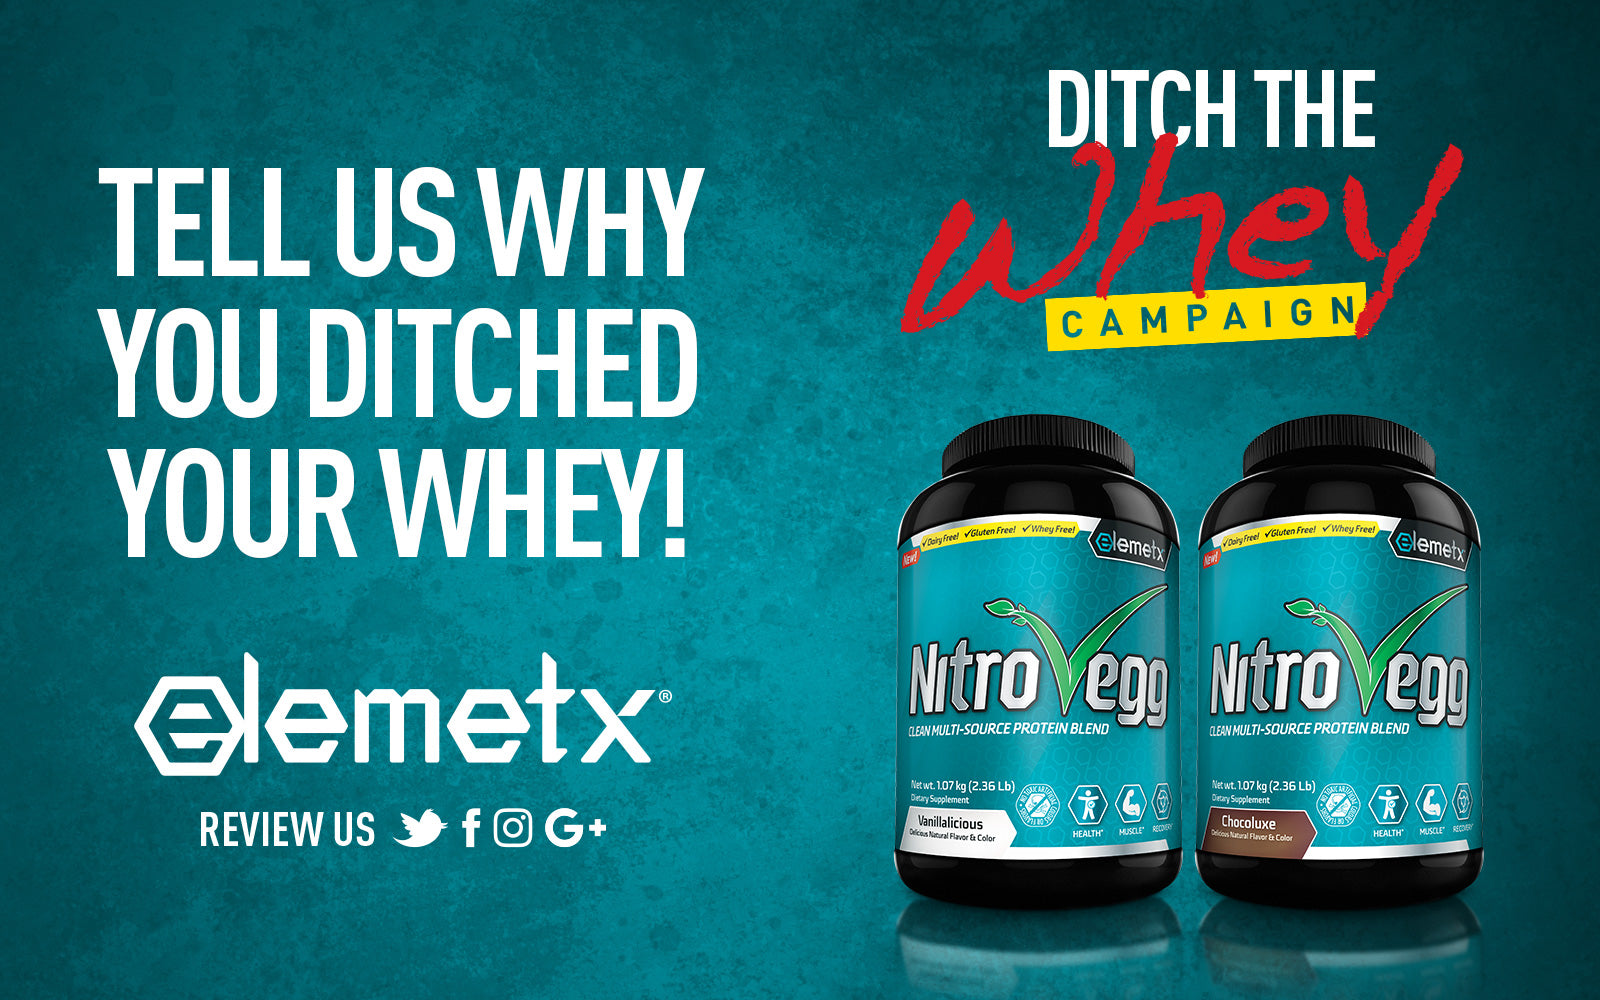 Elemetx - Ditch the whey campaign - tell us why you ditched your whey